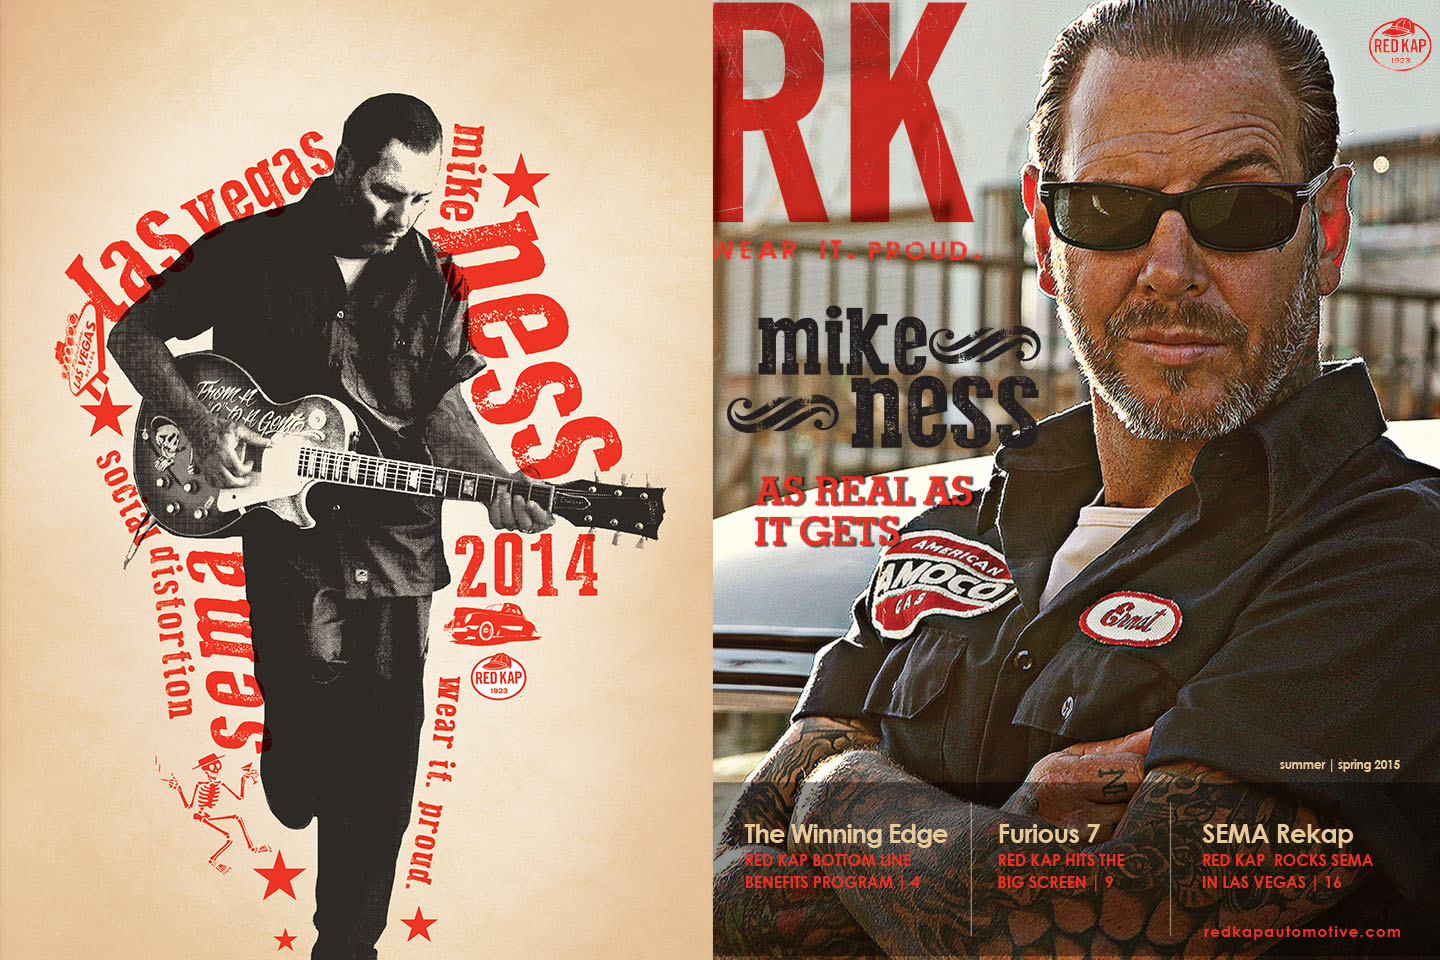 Mike Ness from Social Distortion SEMA signed poster and Red Kap newsletter